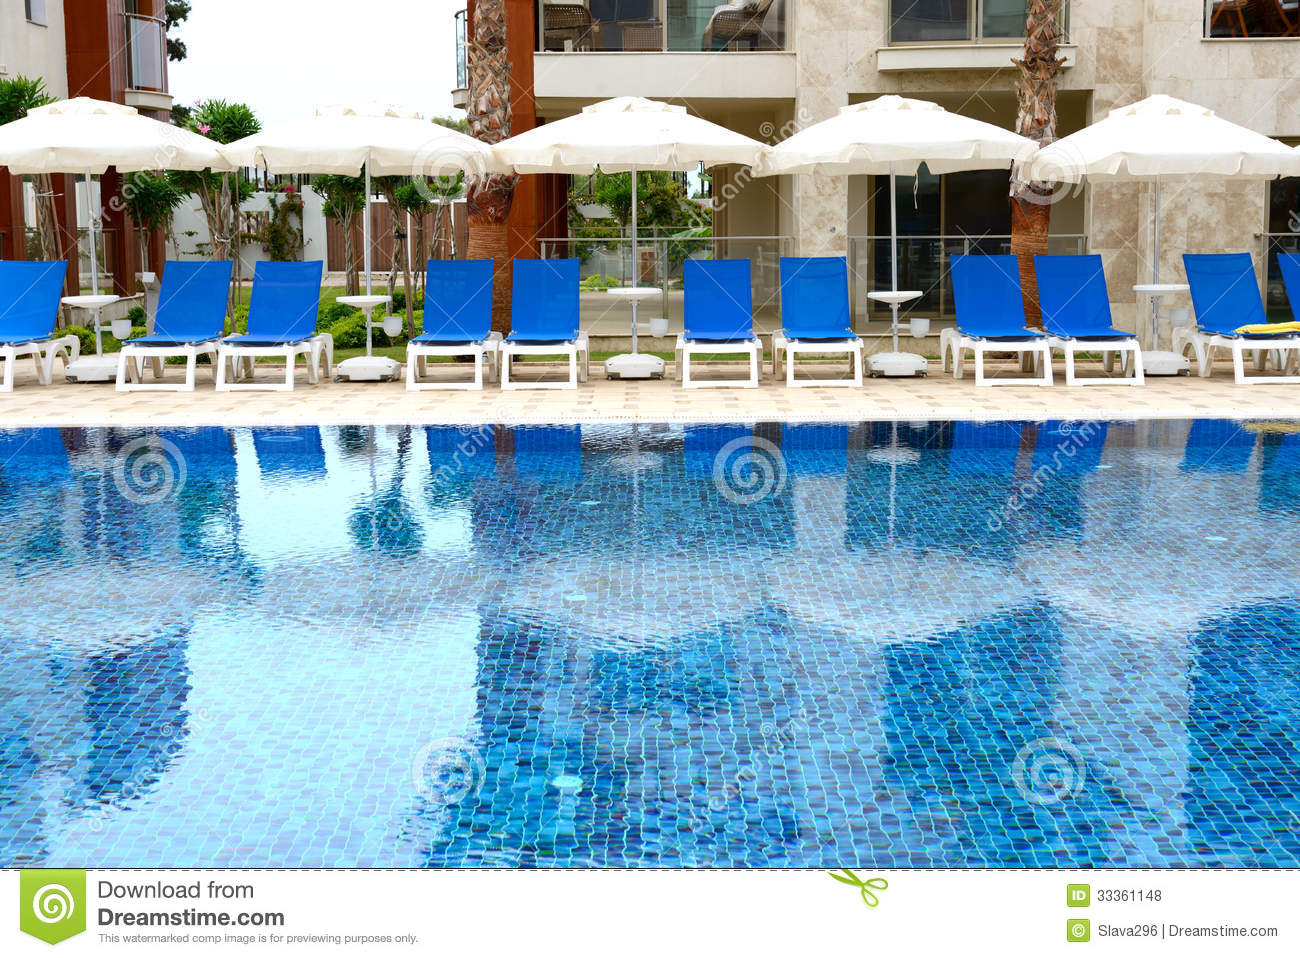 Swimming Pool At Luxury Hotel Royalty Free Stock Photos Image 33361148